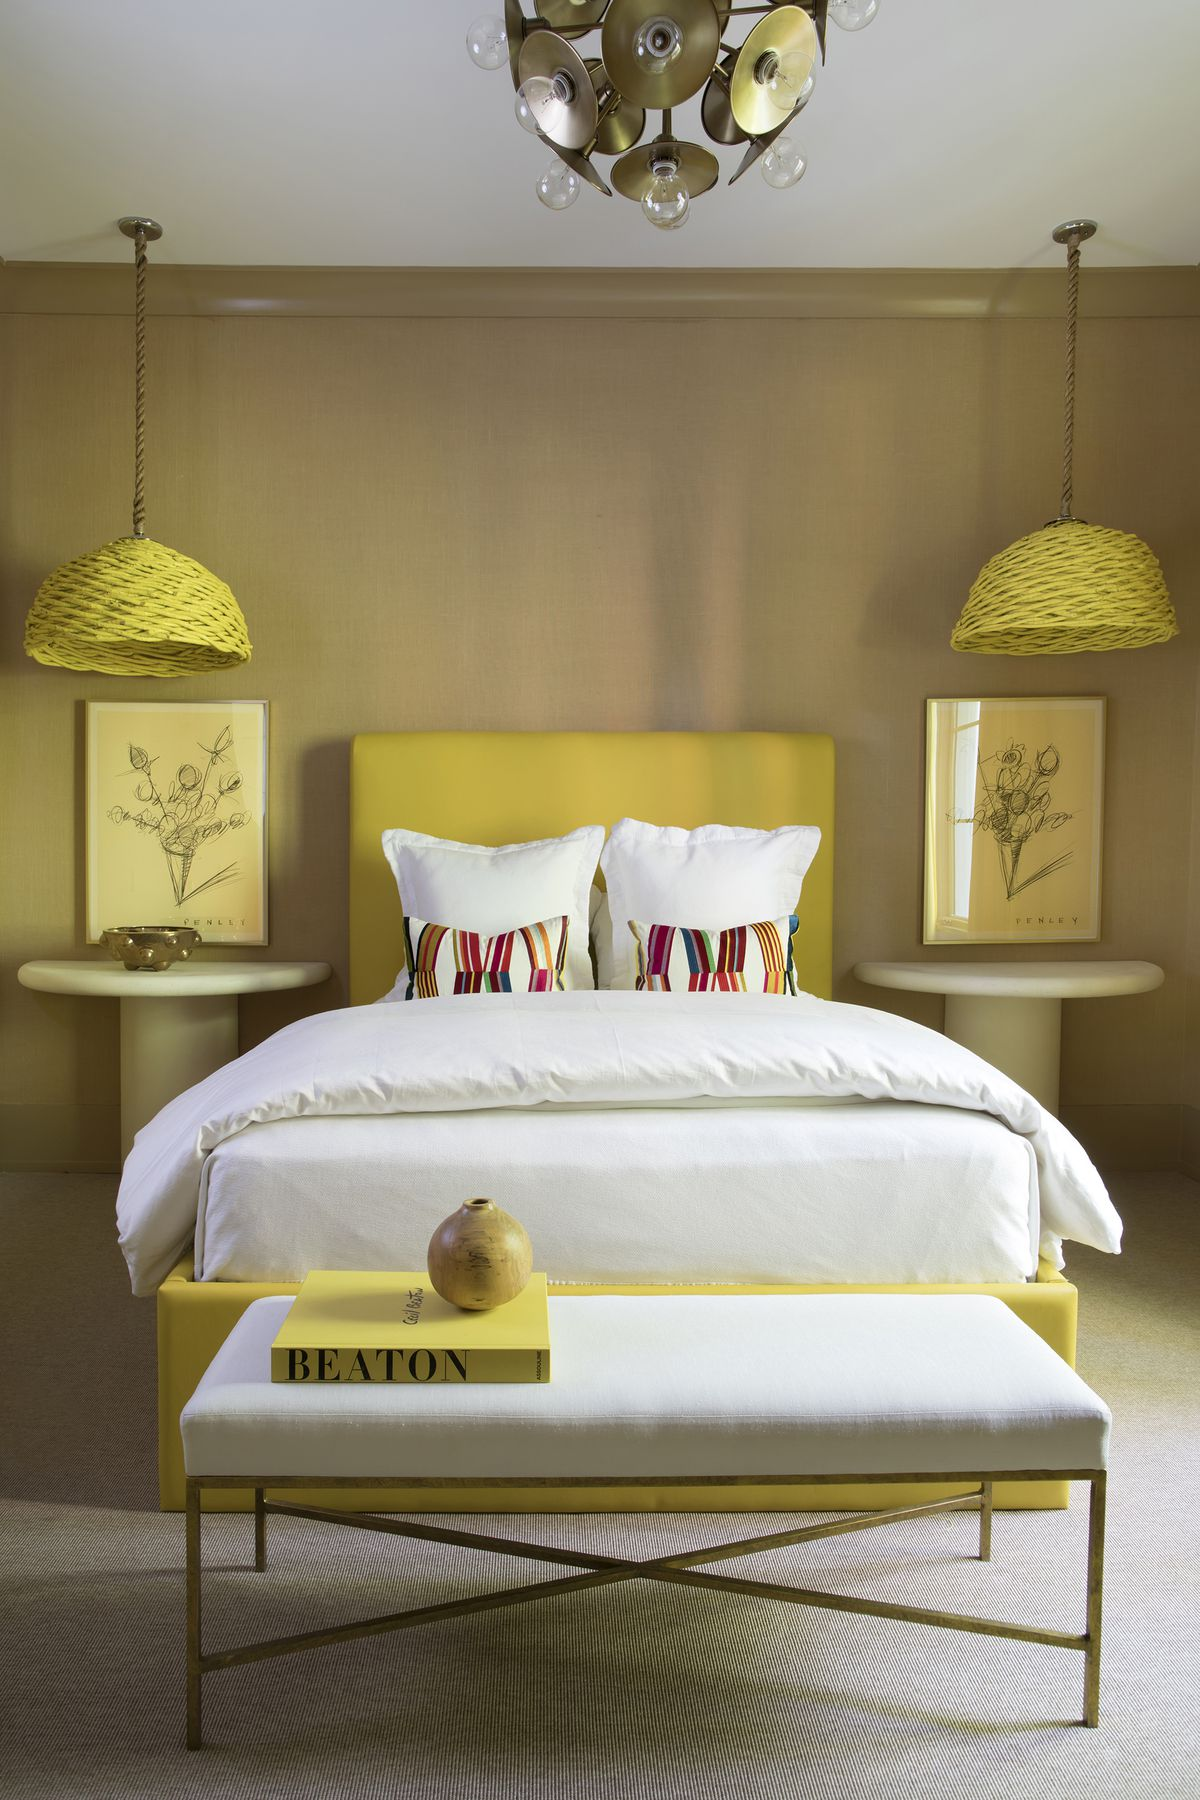 Bright yellow accessories spice up an otherwise neutral bedroom.